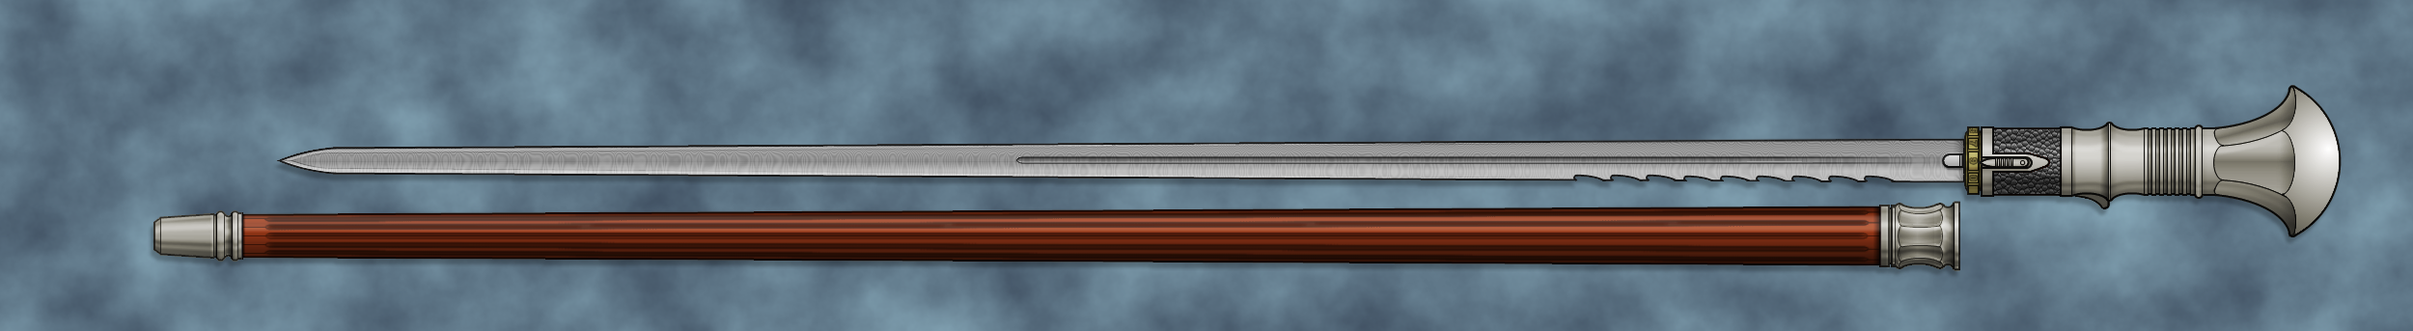 sword_cane_coloring_practice_0_by_sharp_n_pointy-d6awi4o.png